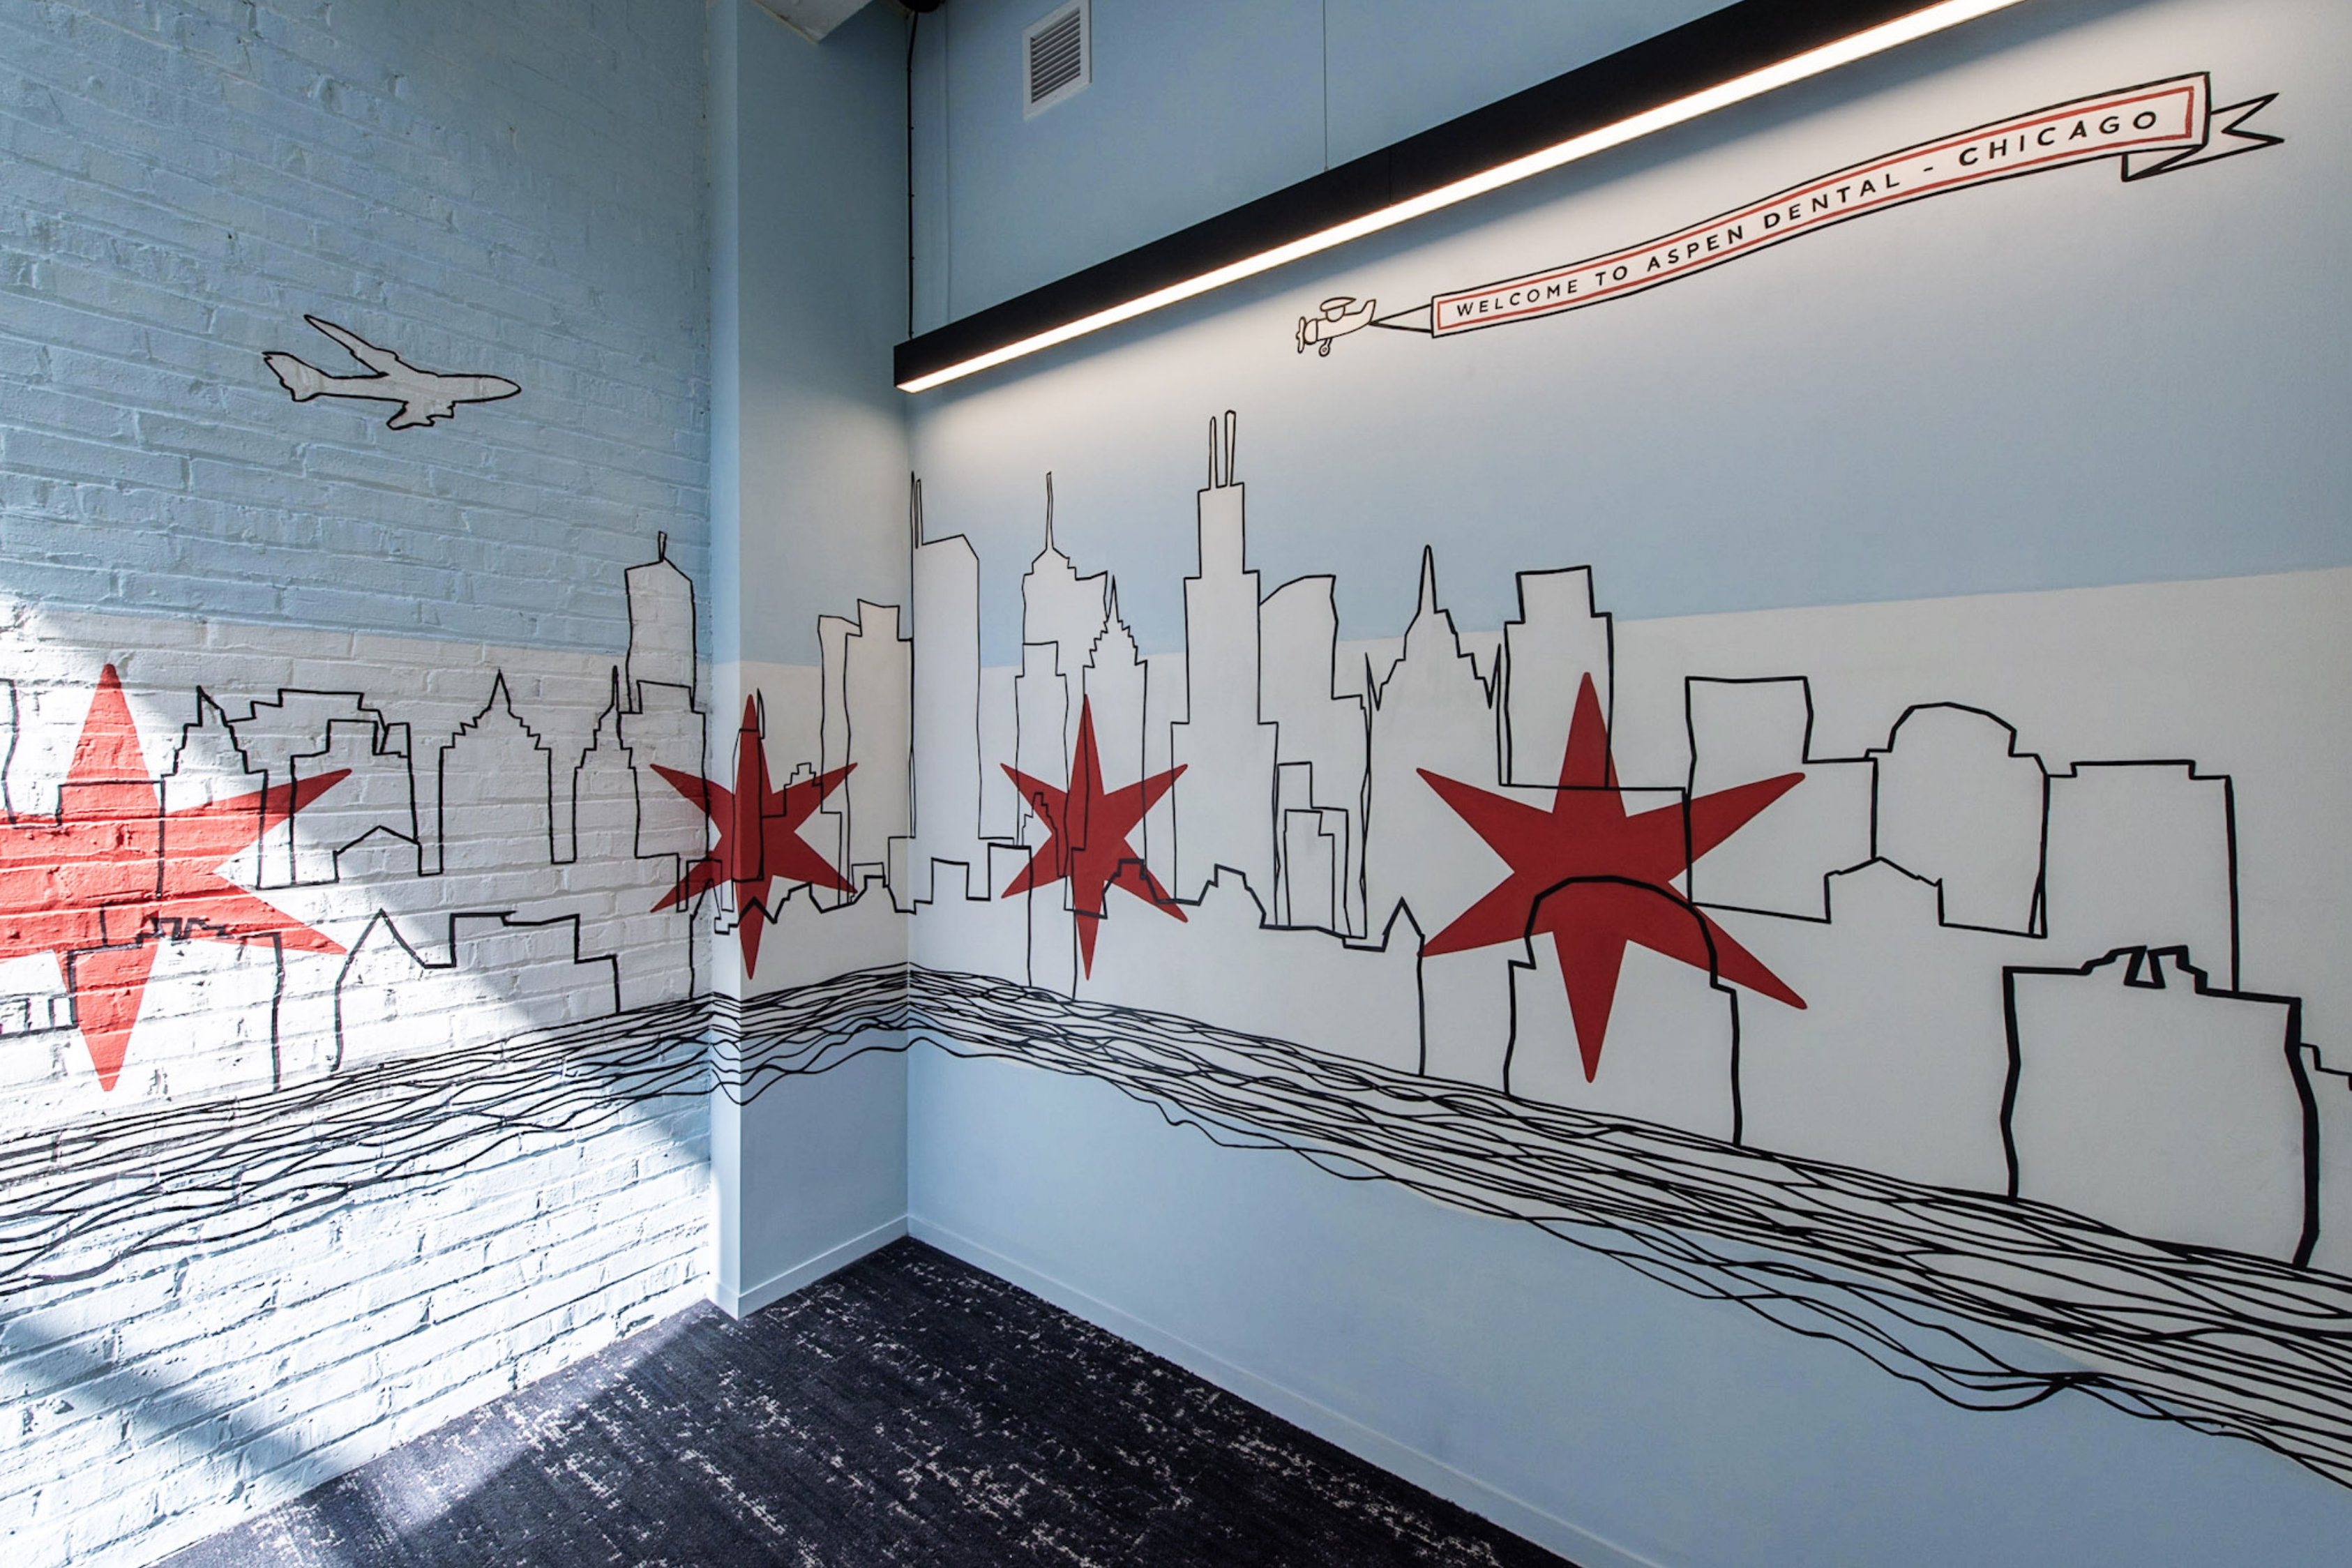 Forcade Branded Chicago Wall Mural